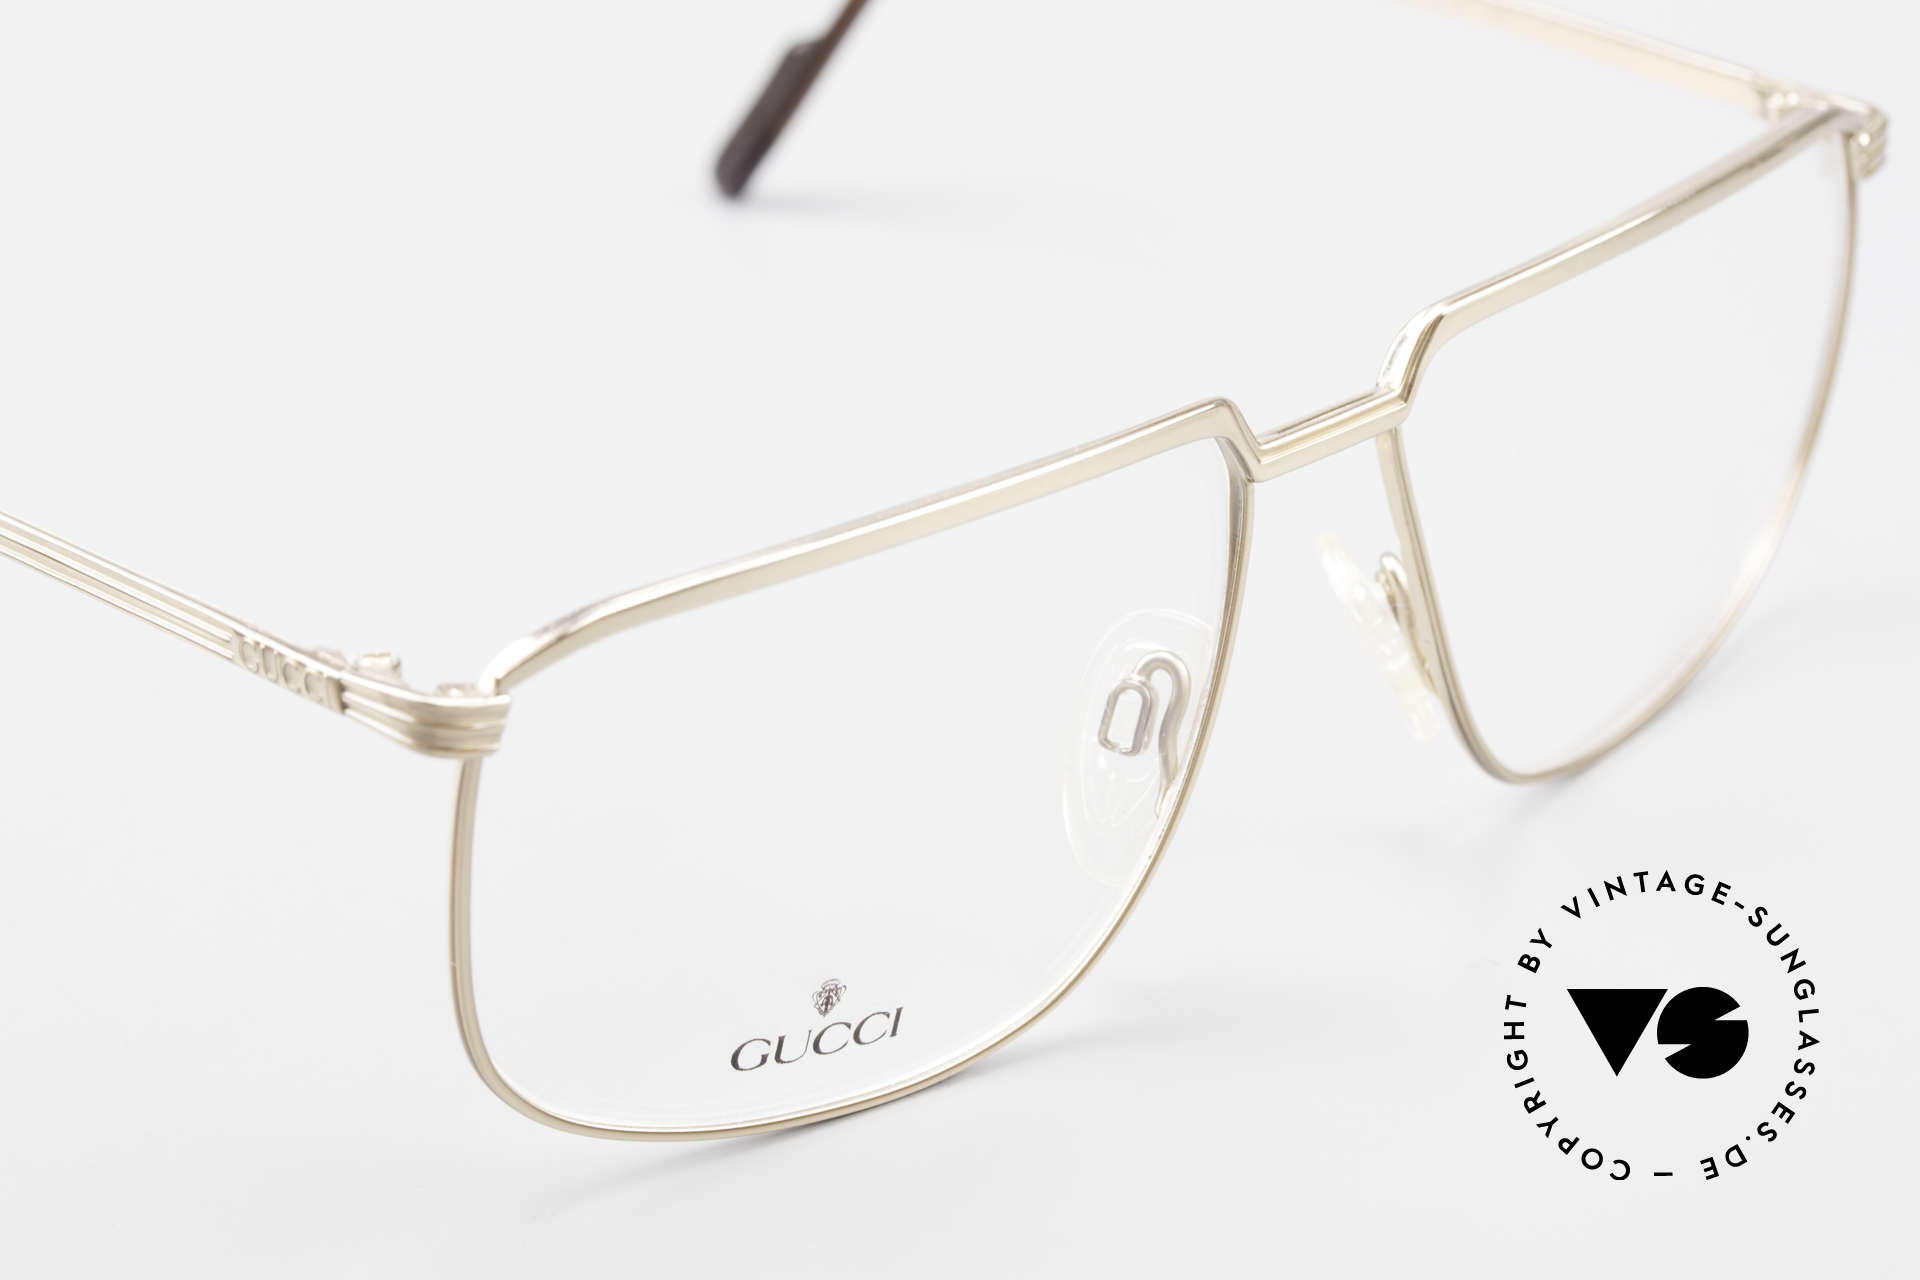 Gucci 1214 Classic 80's Eyeglasses Unisex, NO RETRO EYEWEAR; an old Gucci ORIGINAL!, Made for Men and Women